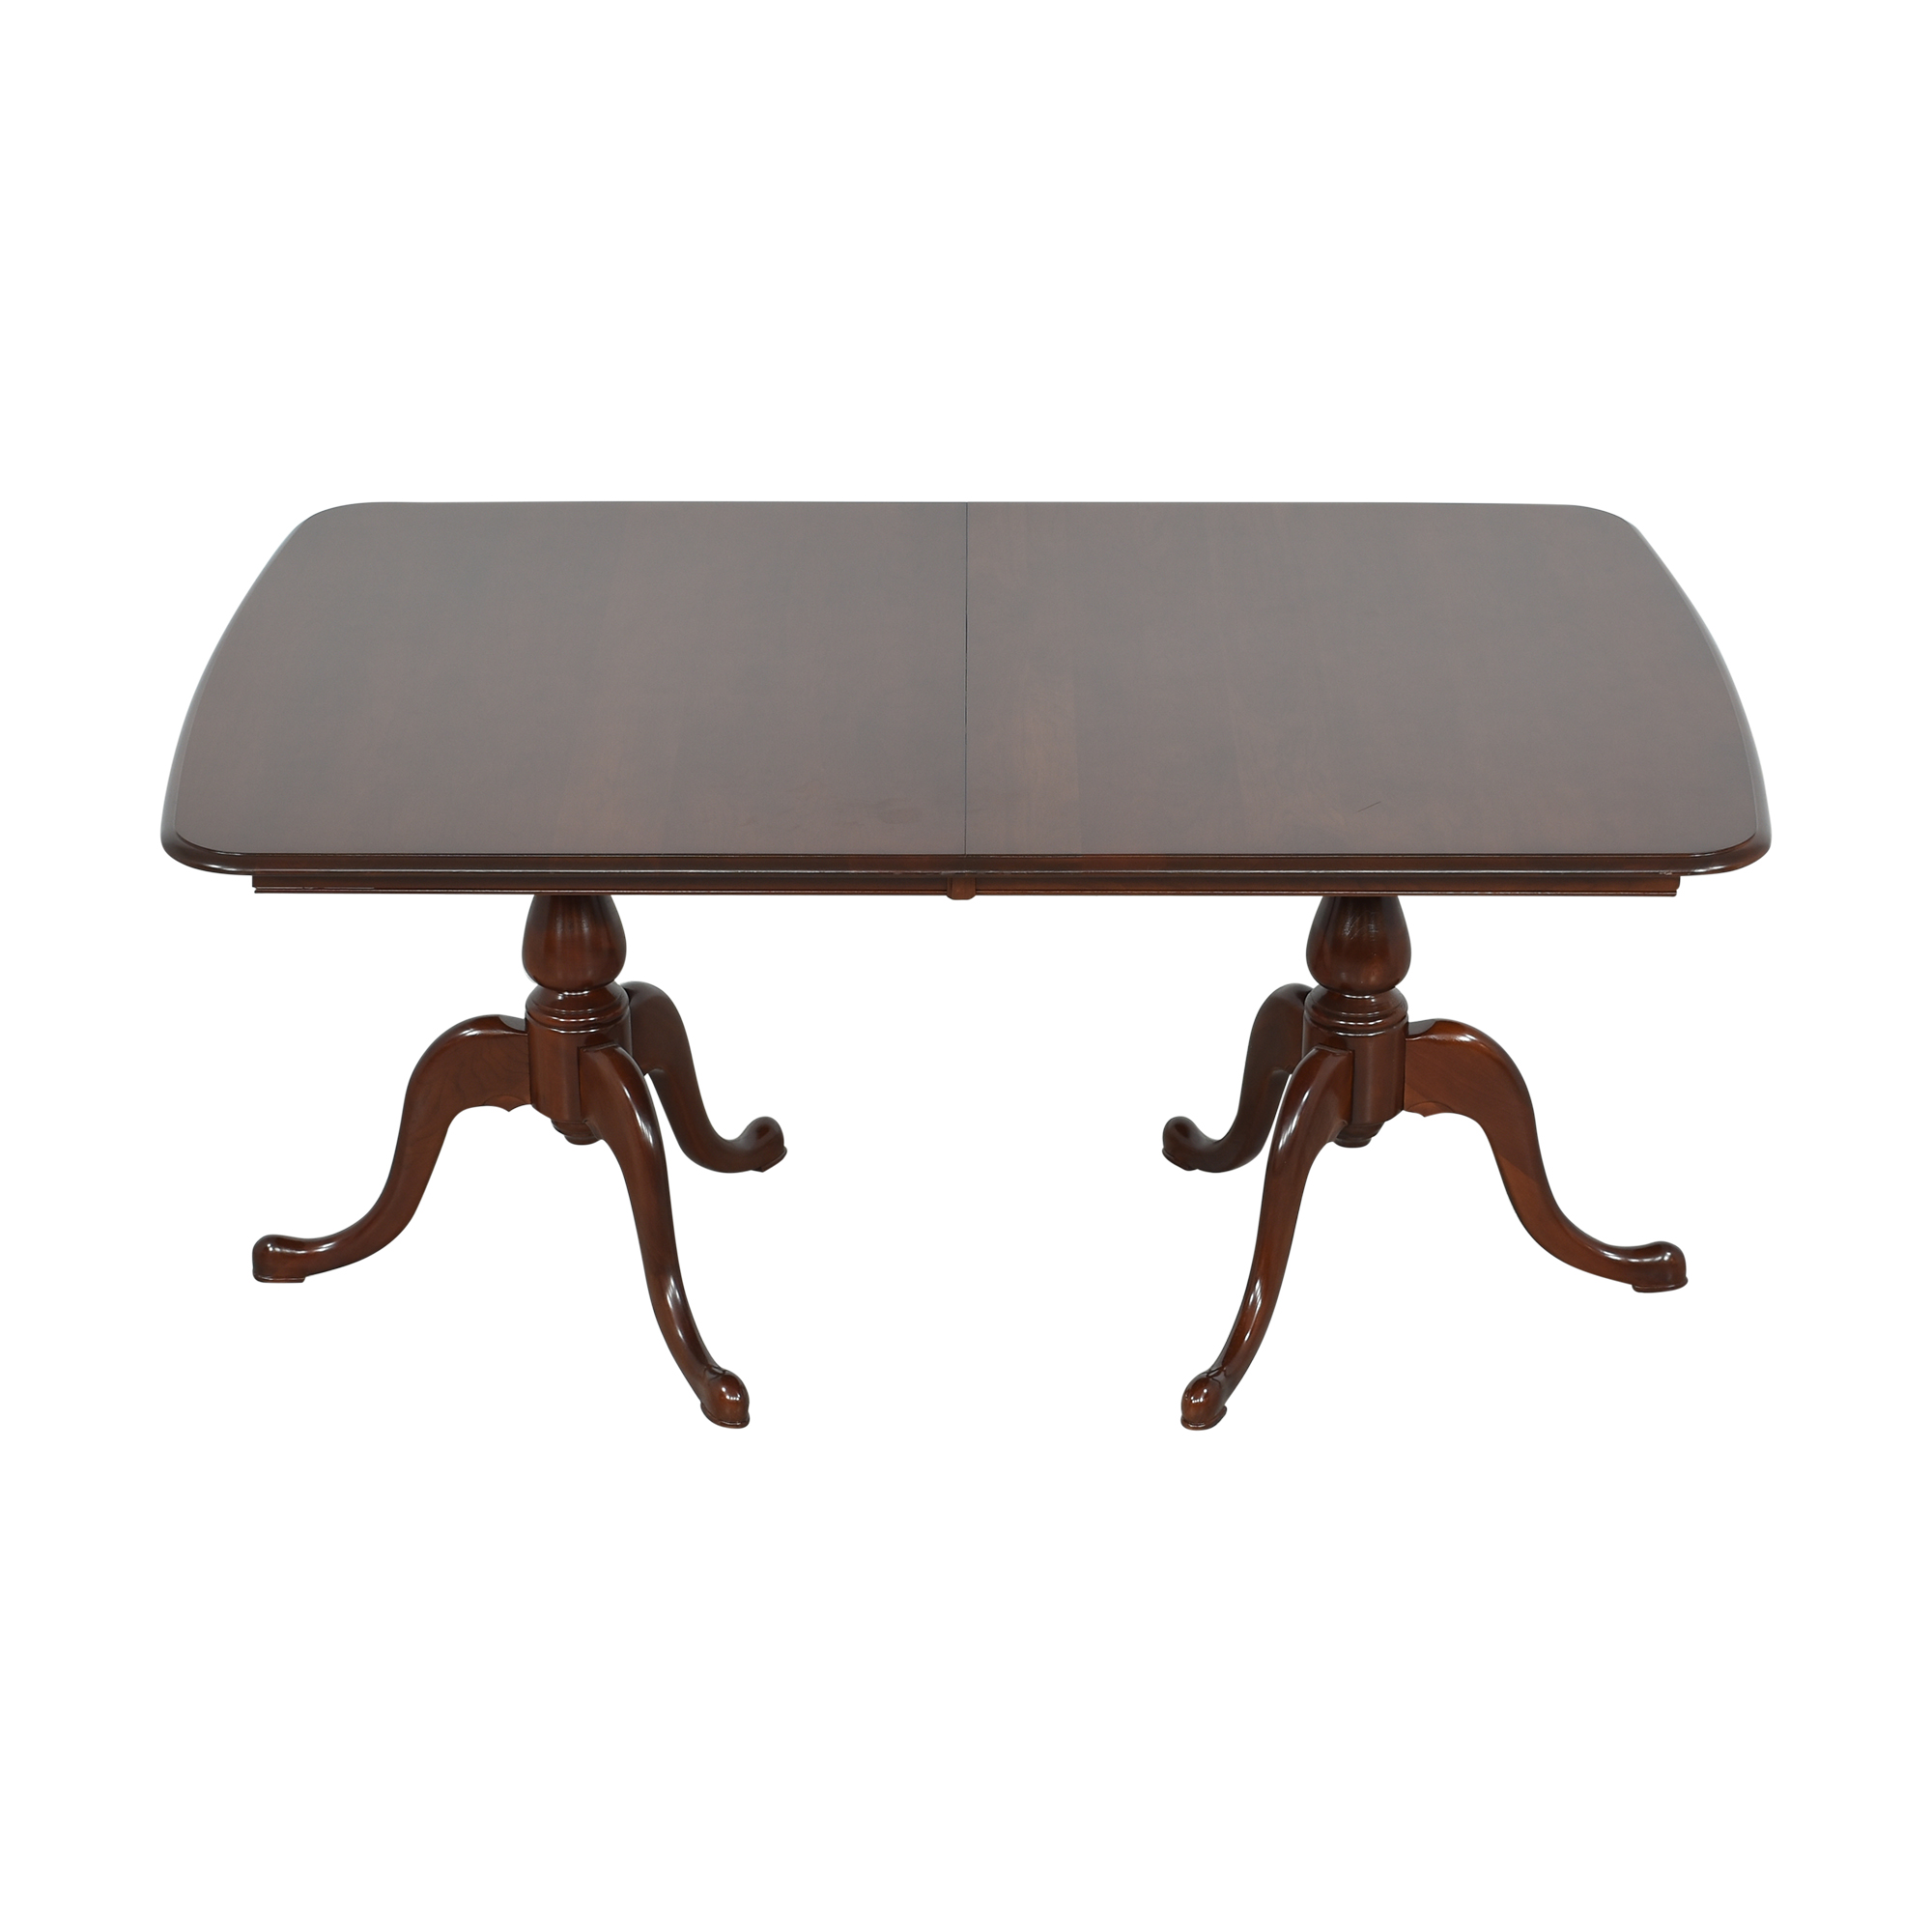 The Colonial Furniture Company The Colonial Furniture Company Extendable Dining Table for sale